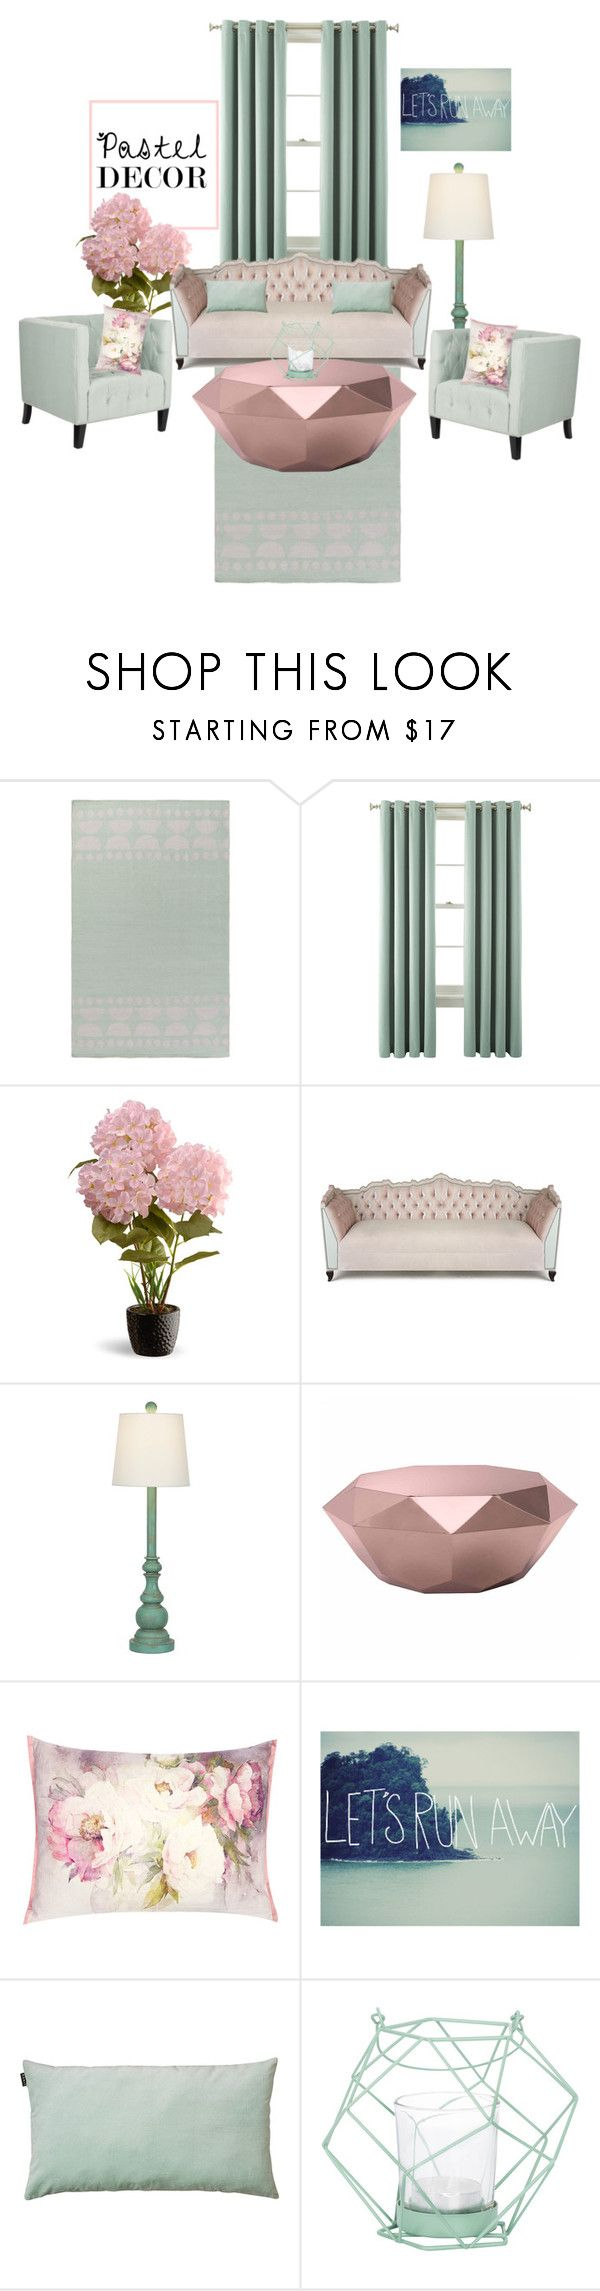 """""""Pink and green pastel"""" by pink-roosje ❤ liked on Polyvore featuring interior, interiors, interior design, home, home decor, interior decorating, Lotta Jansdotter, Liz Claiborne, National Tree Company and Haute House"""